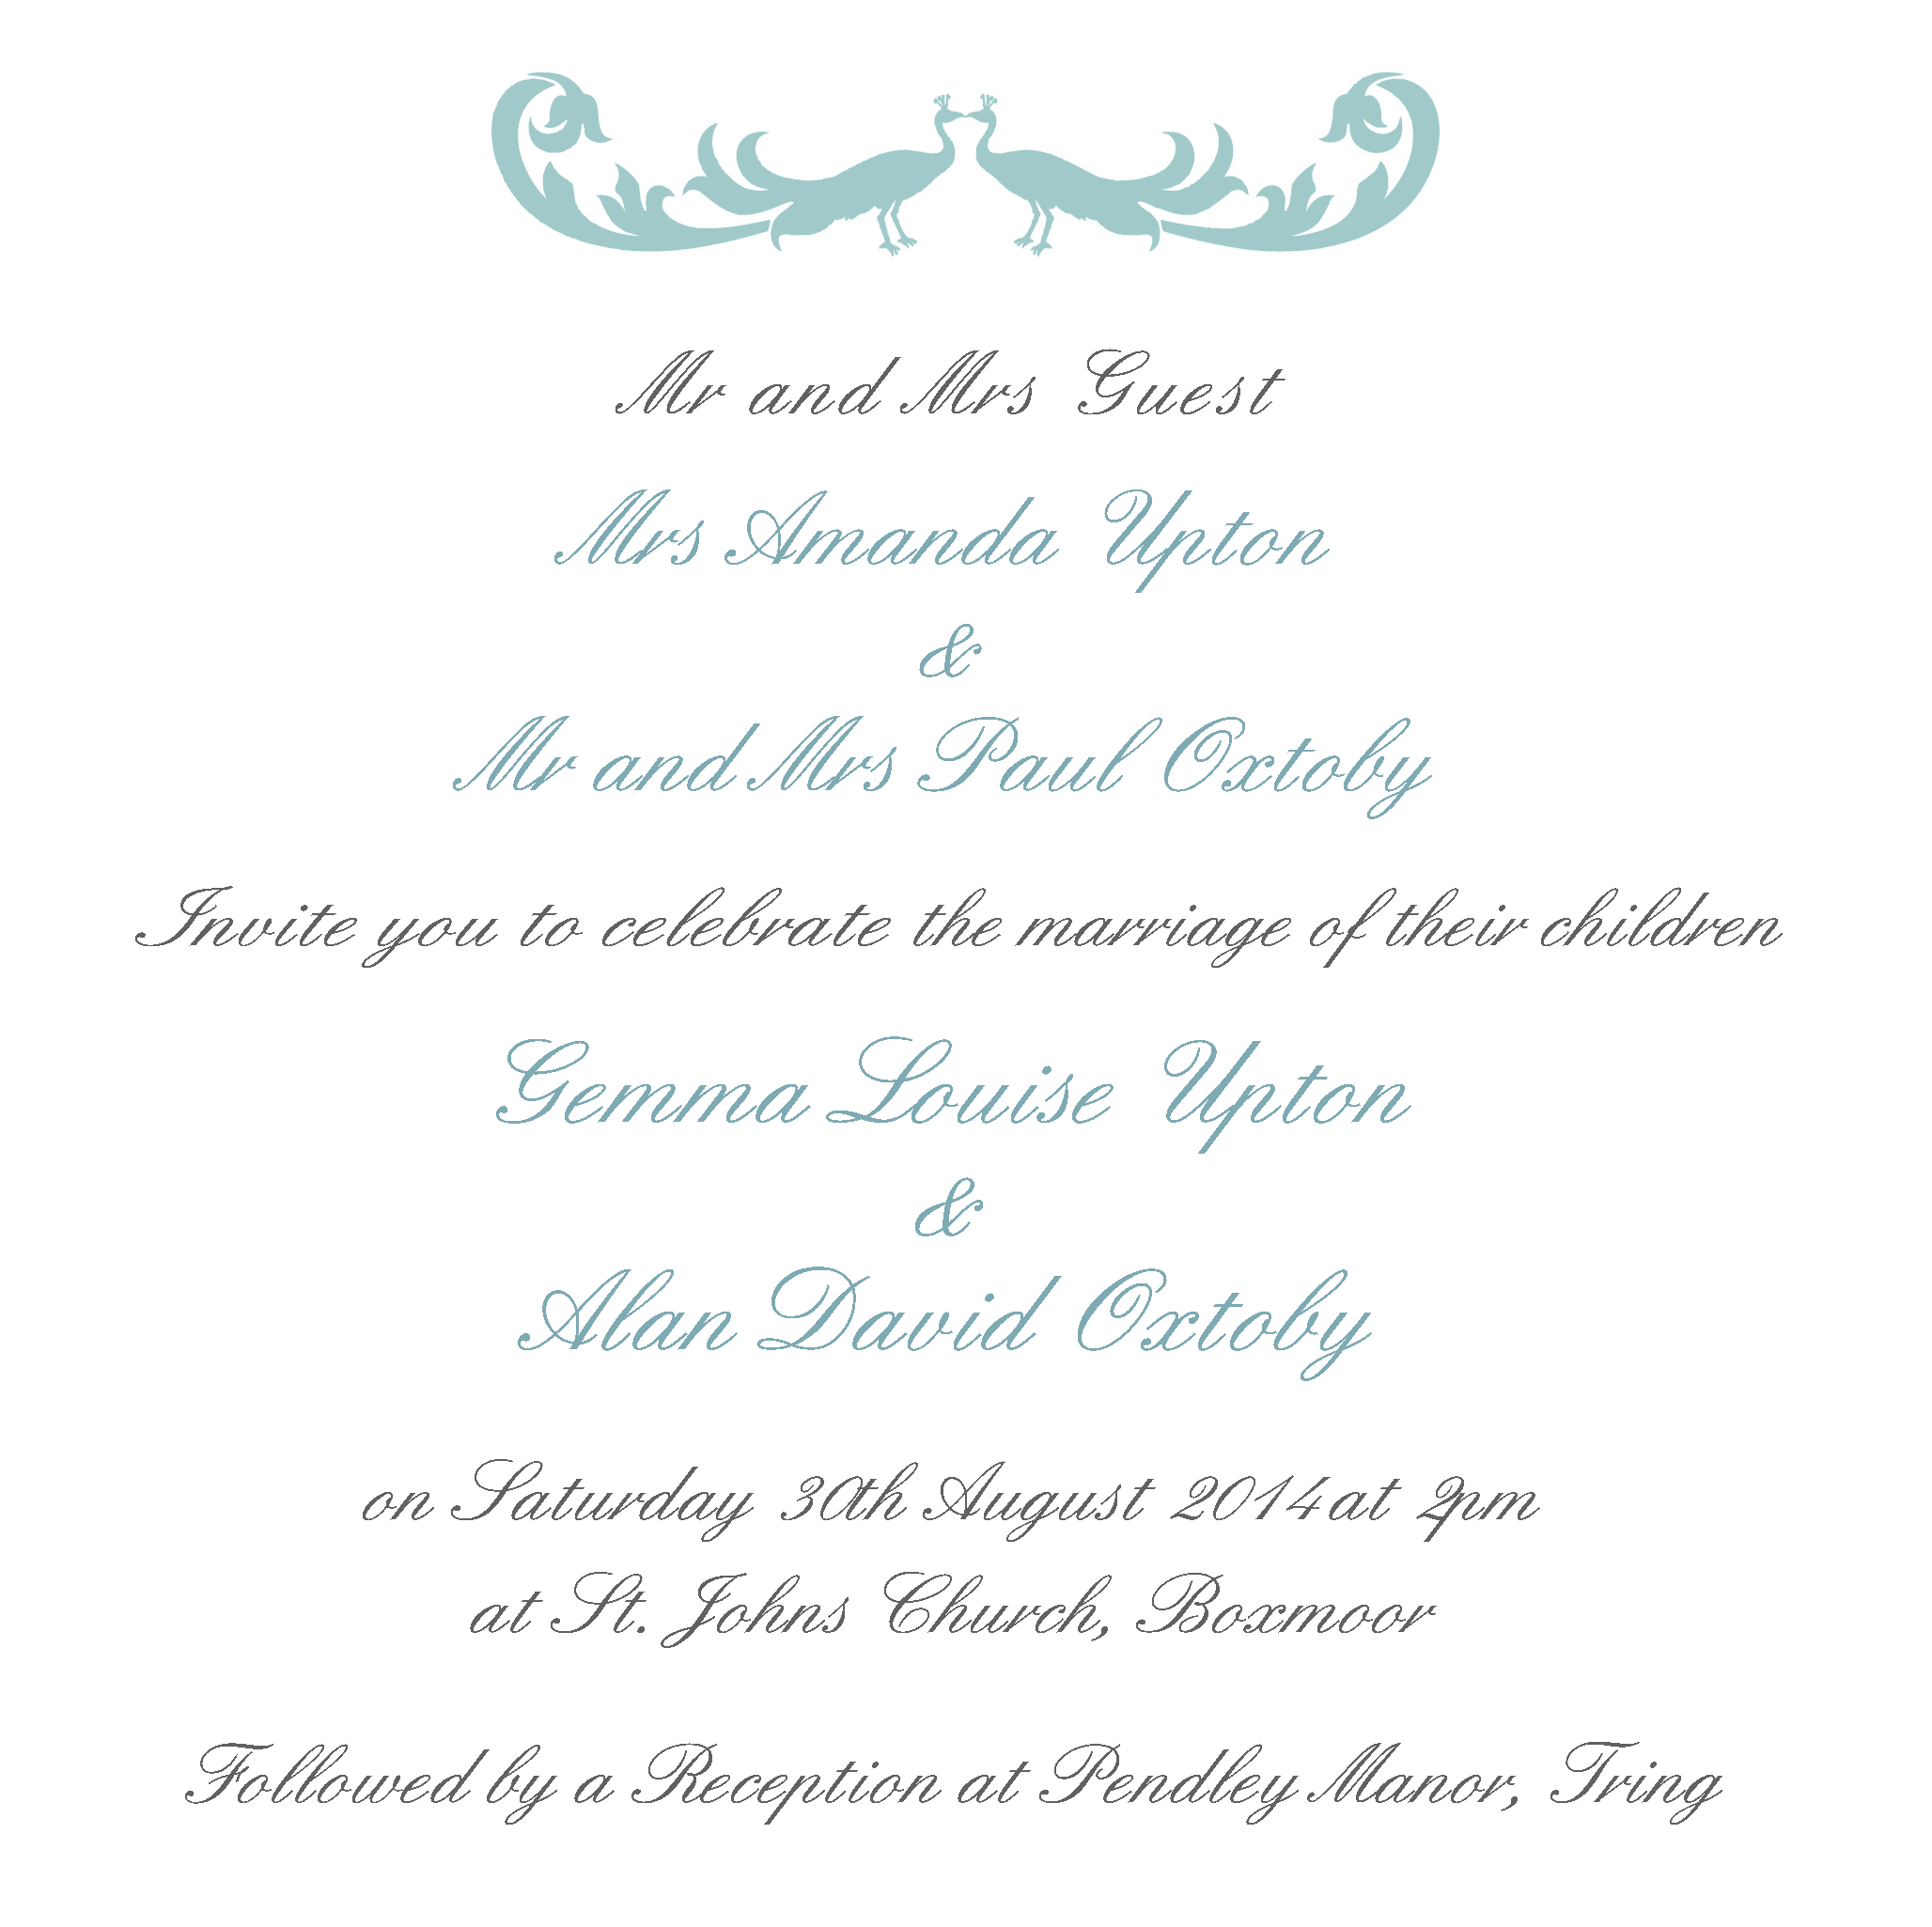 wedding stationery emporium dreams With wedding invitations wording bride s parents